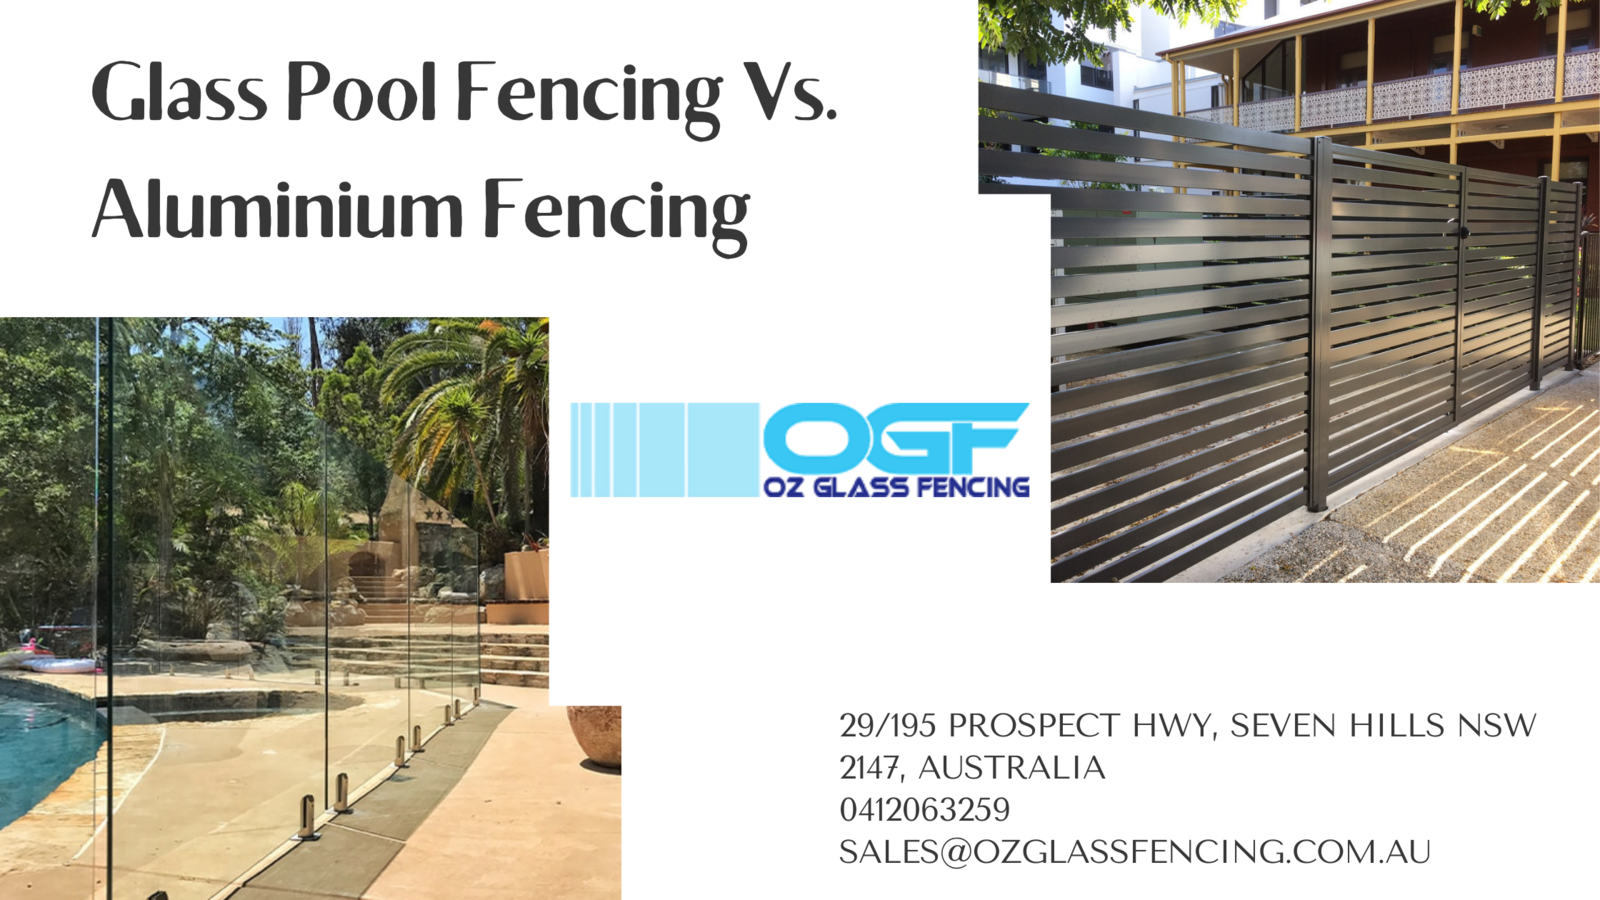 Glass Pool Fencing Vs Aluminium Fencing Which One You Should Select Oz Glass Fencing